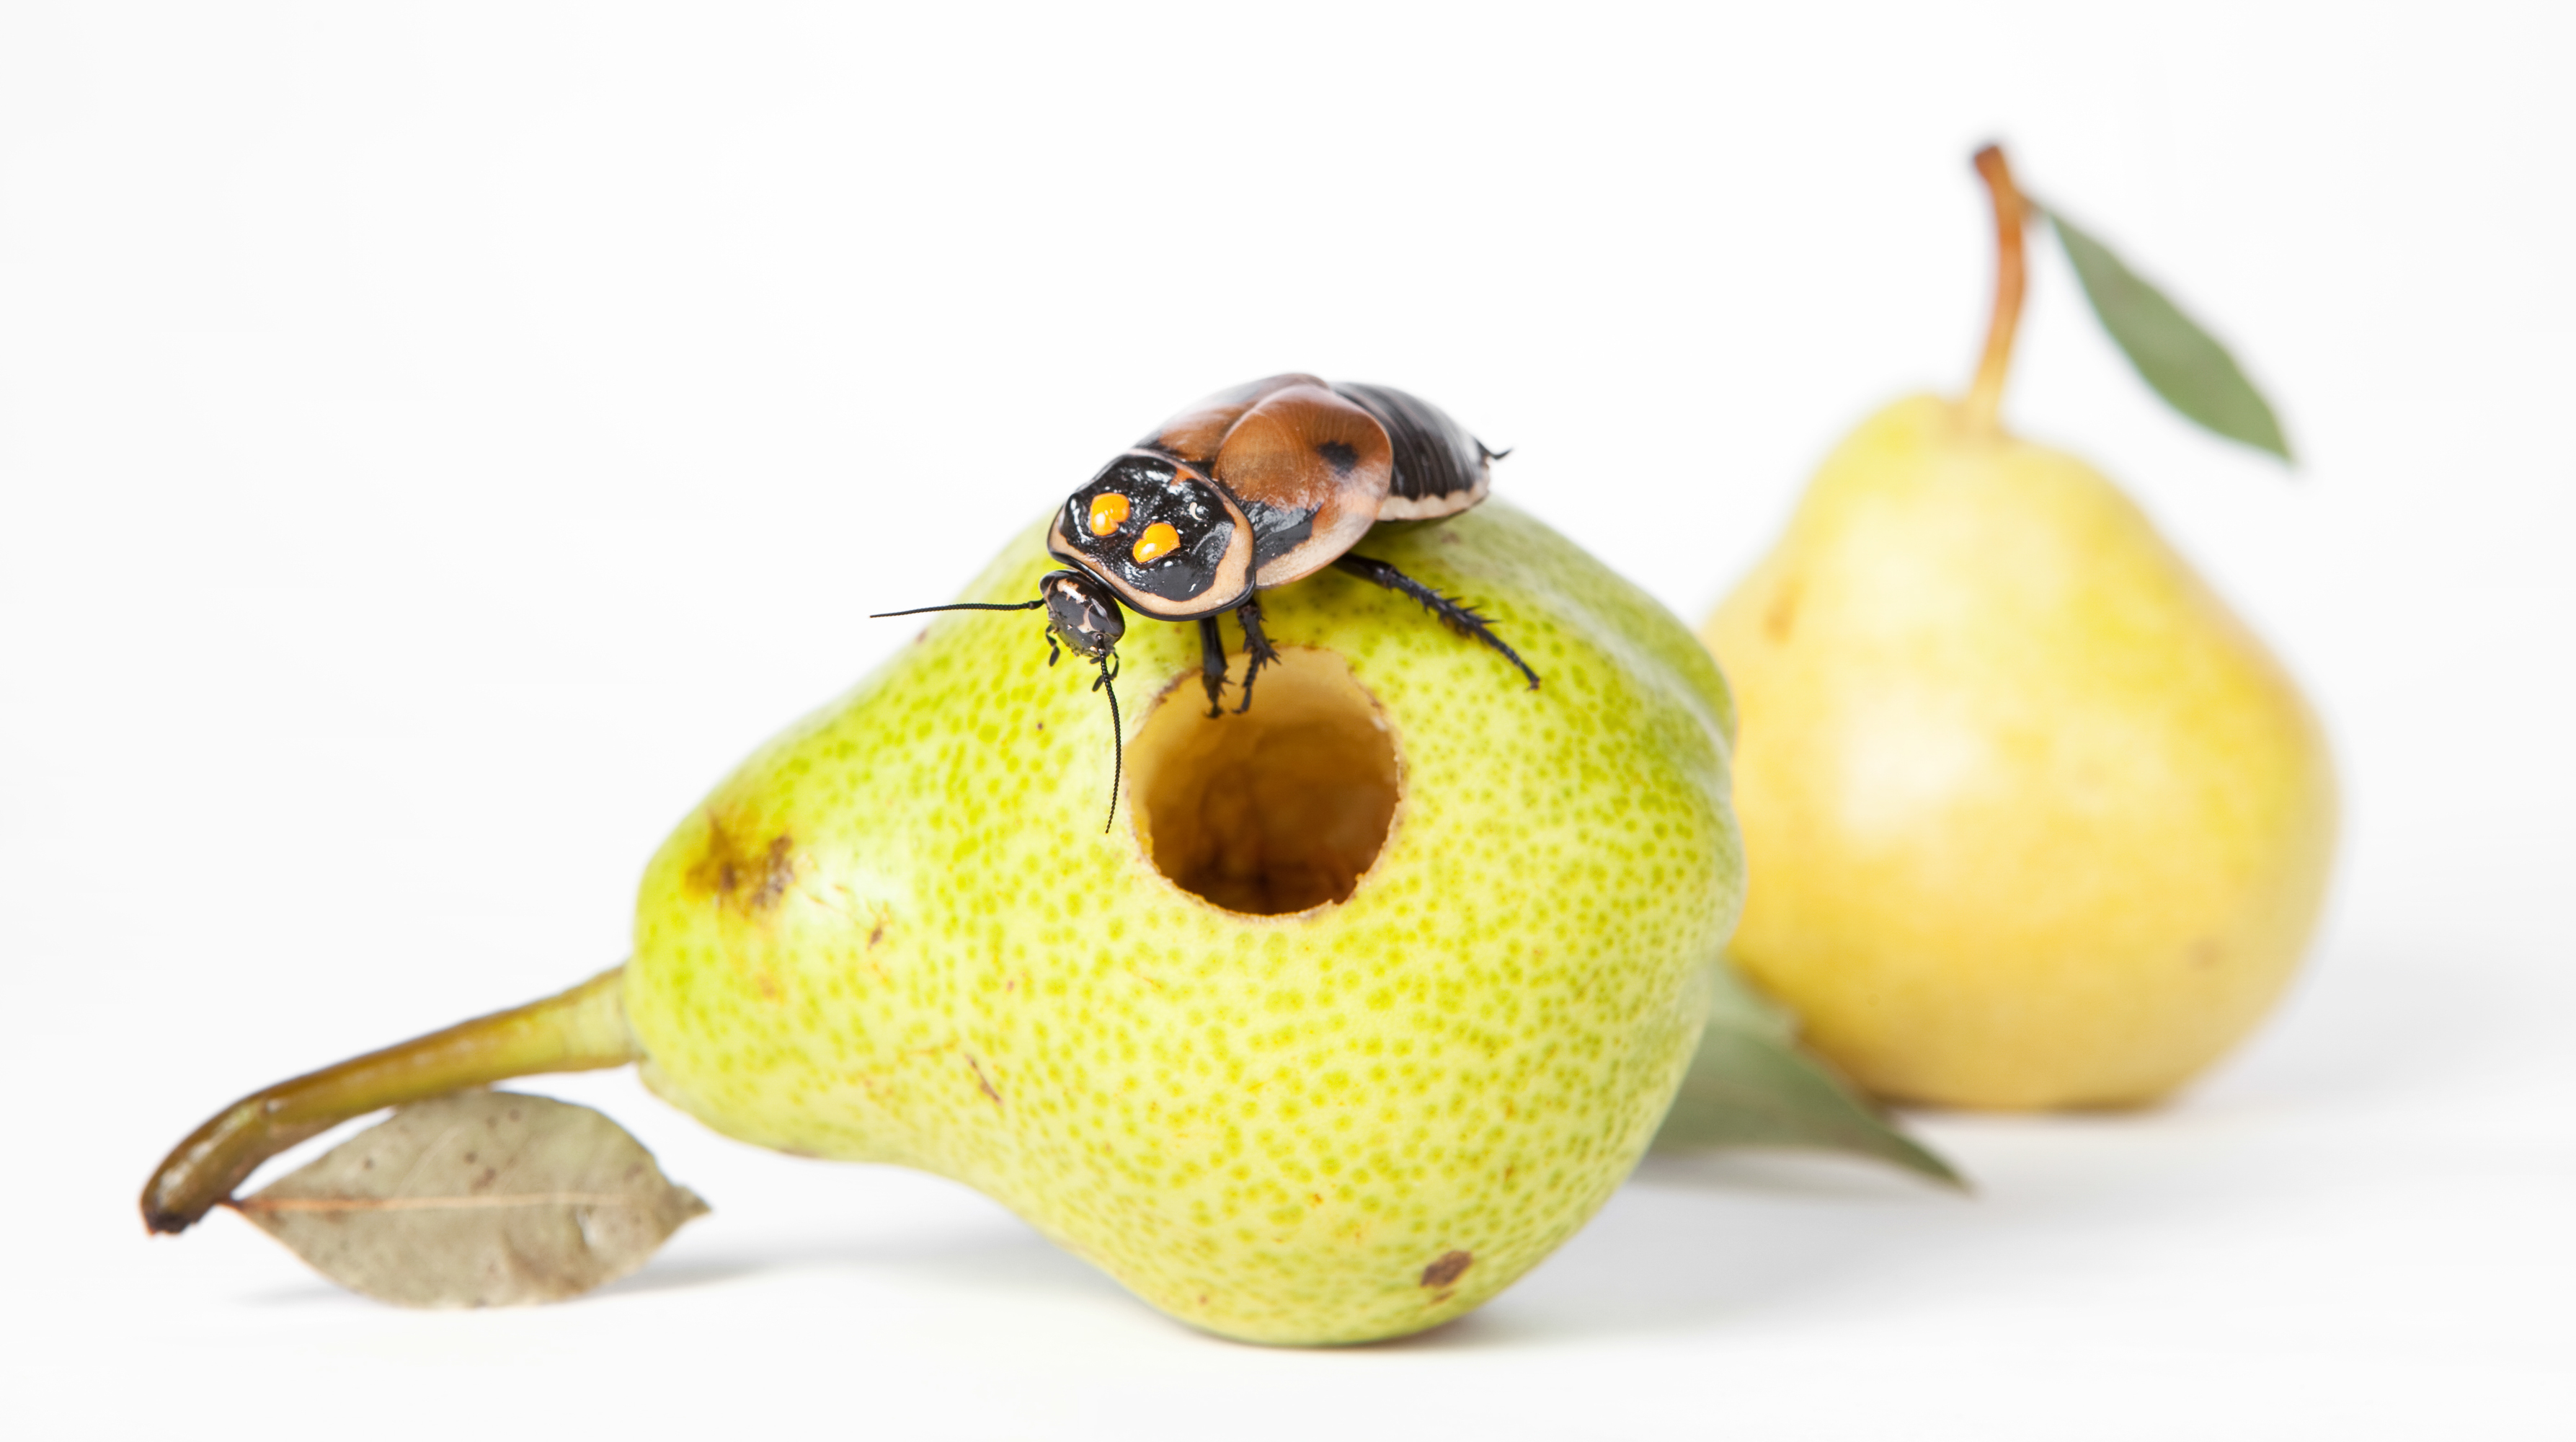 Worms in pear photo